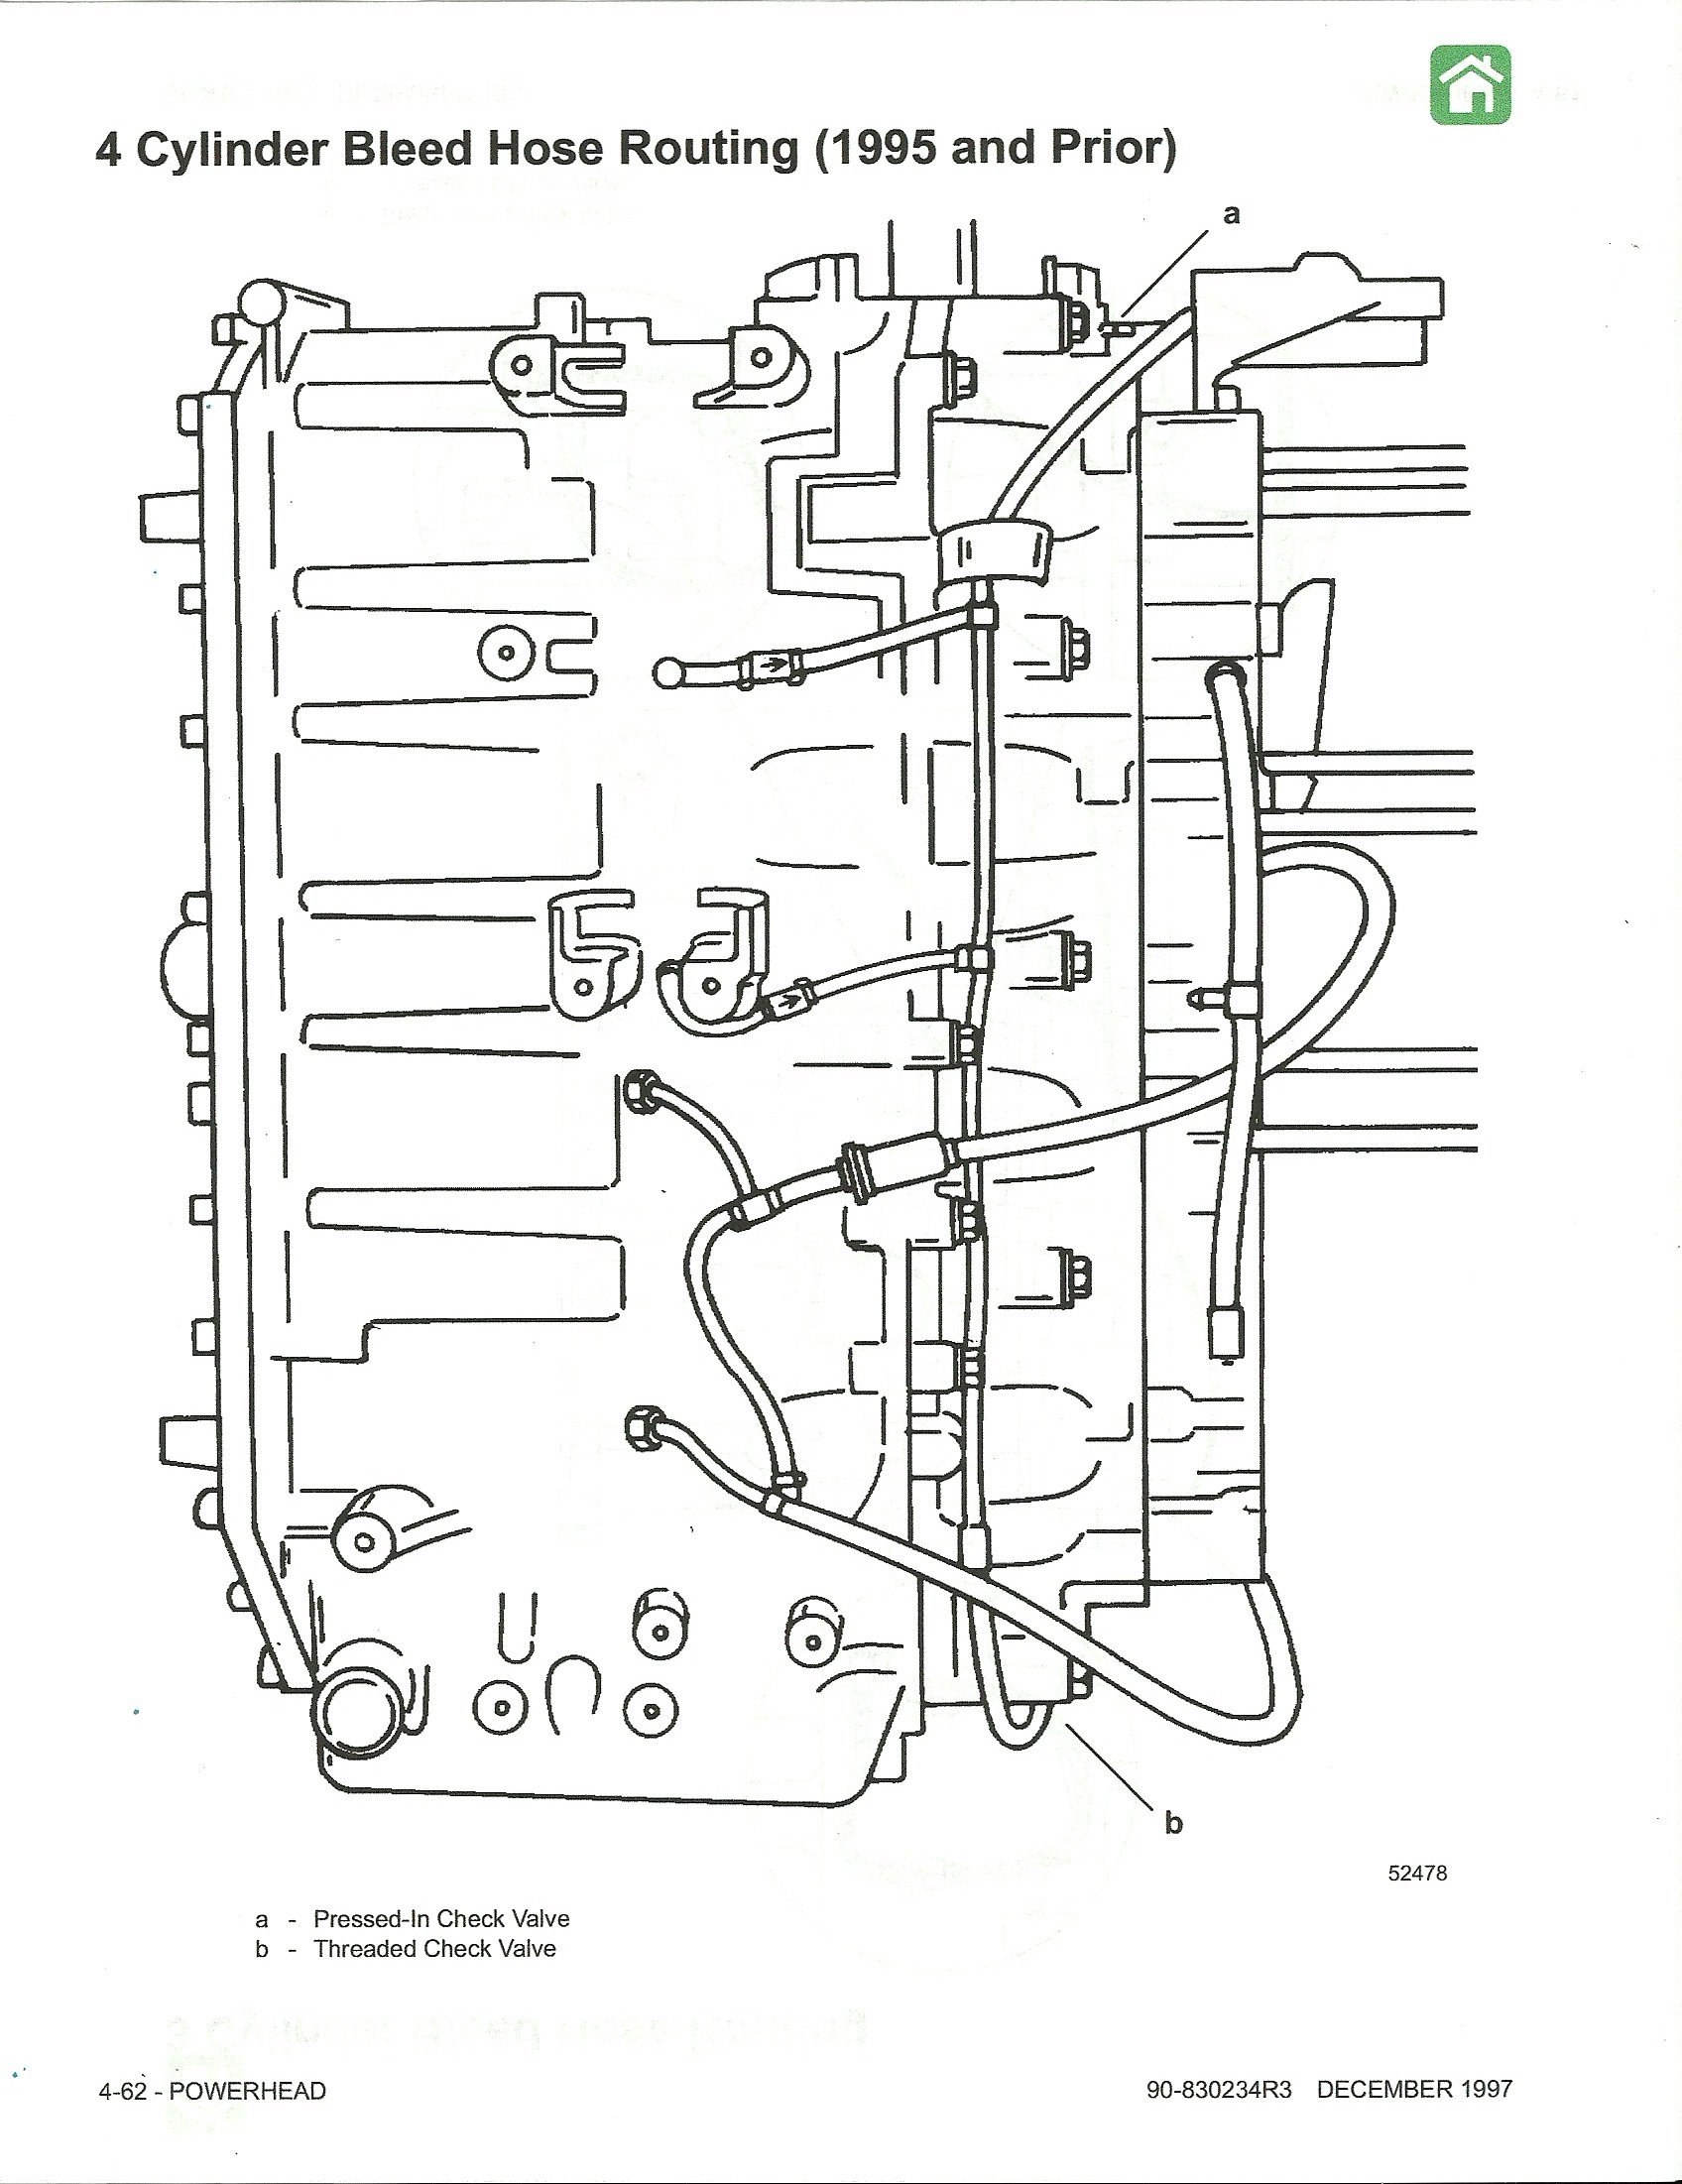 Wiring Diagram For A Mercury 40hp